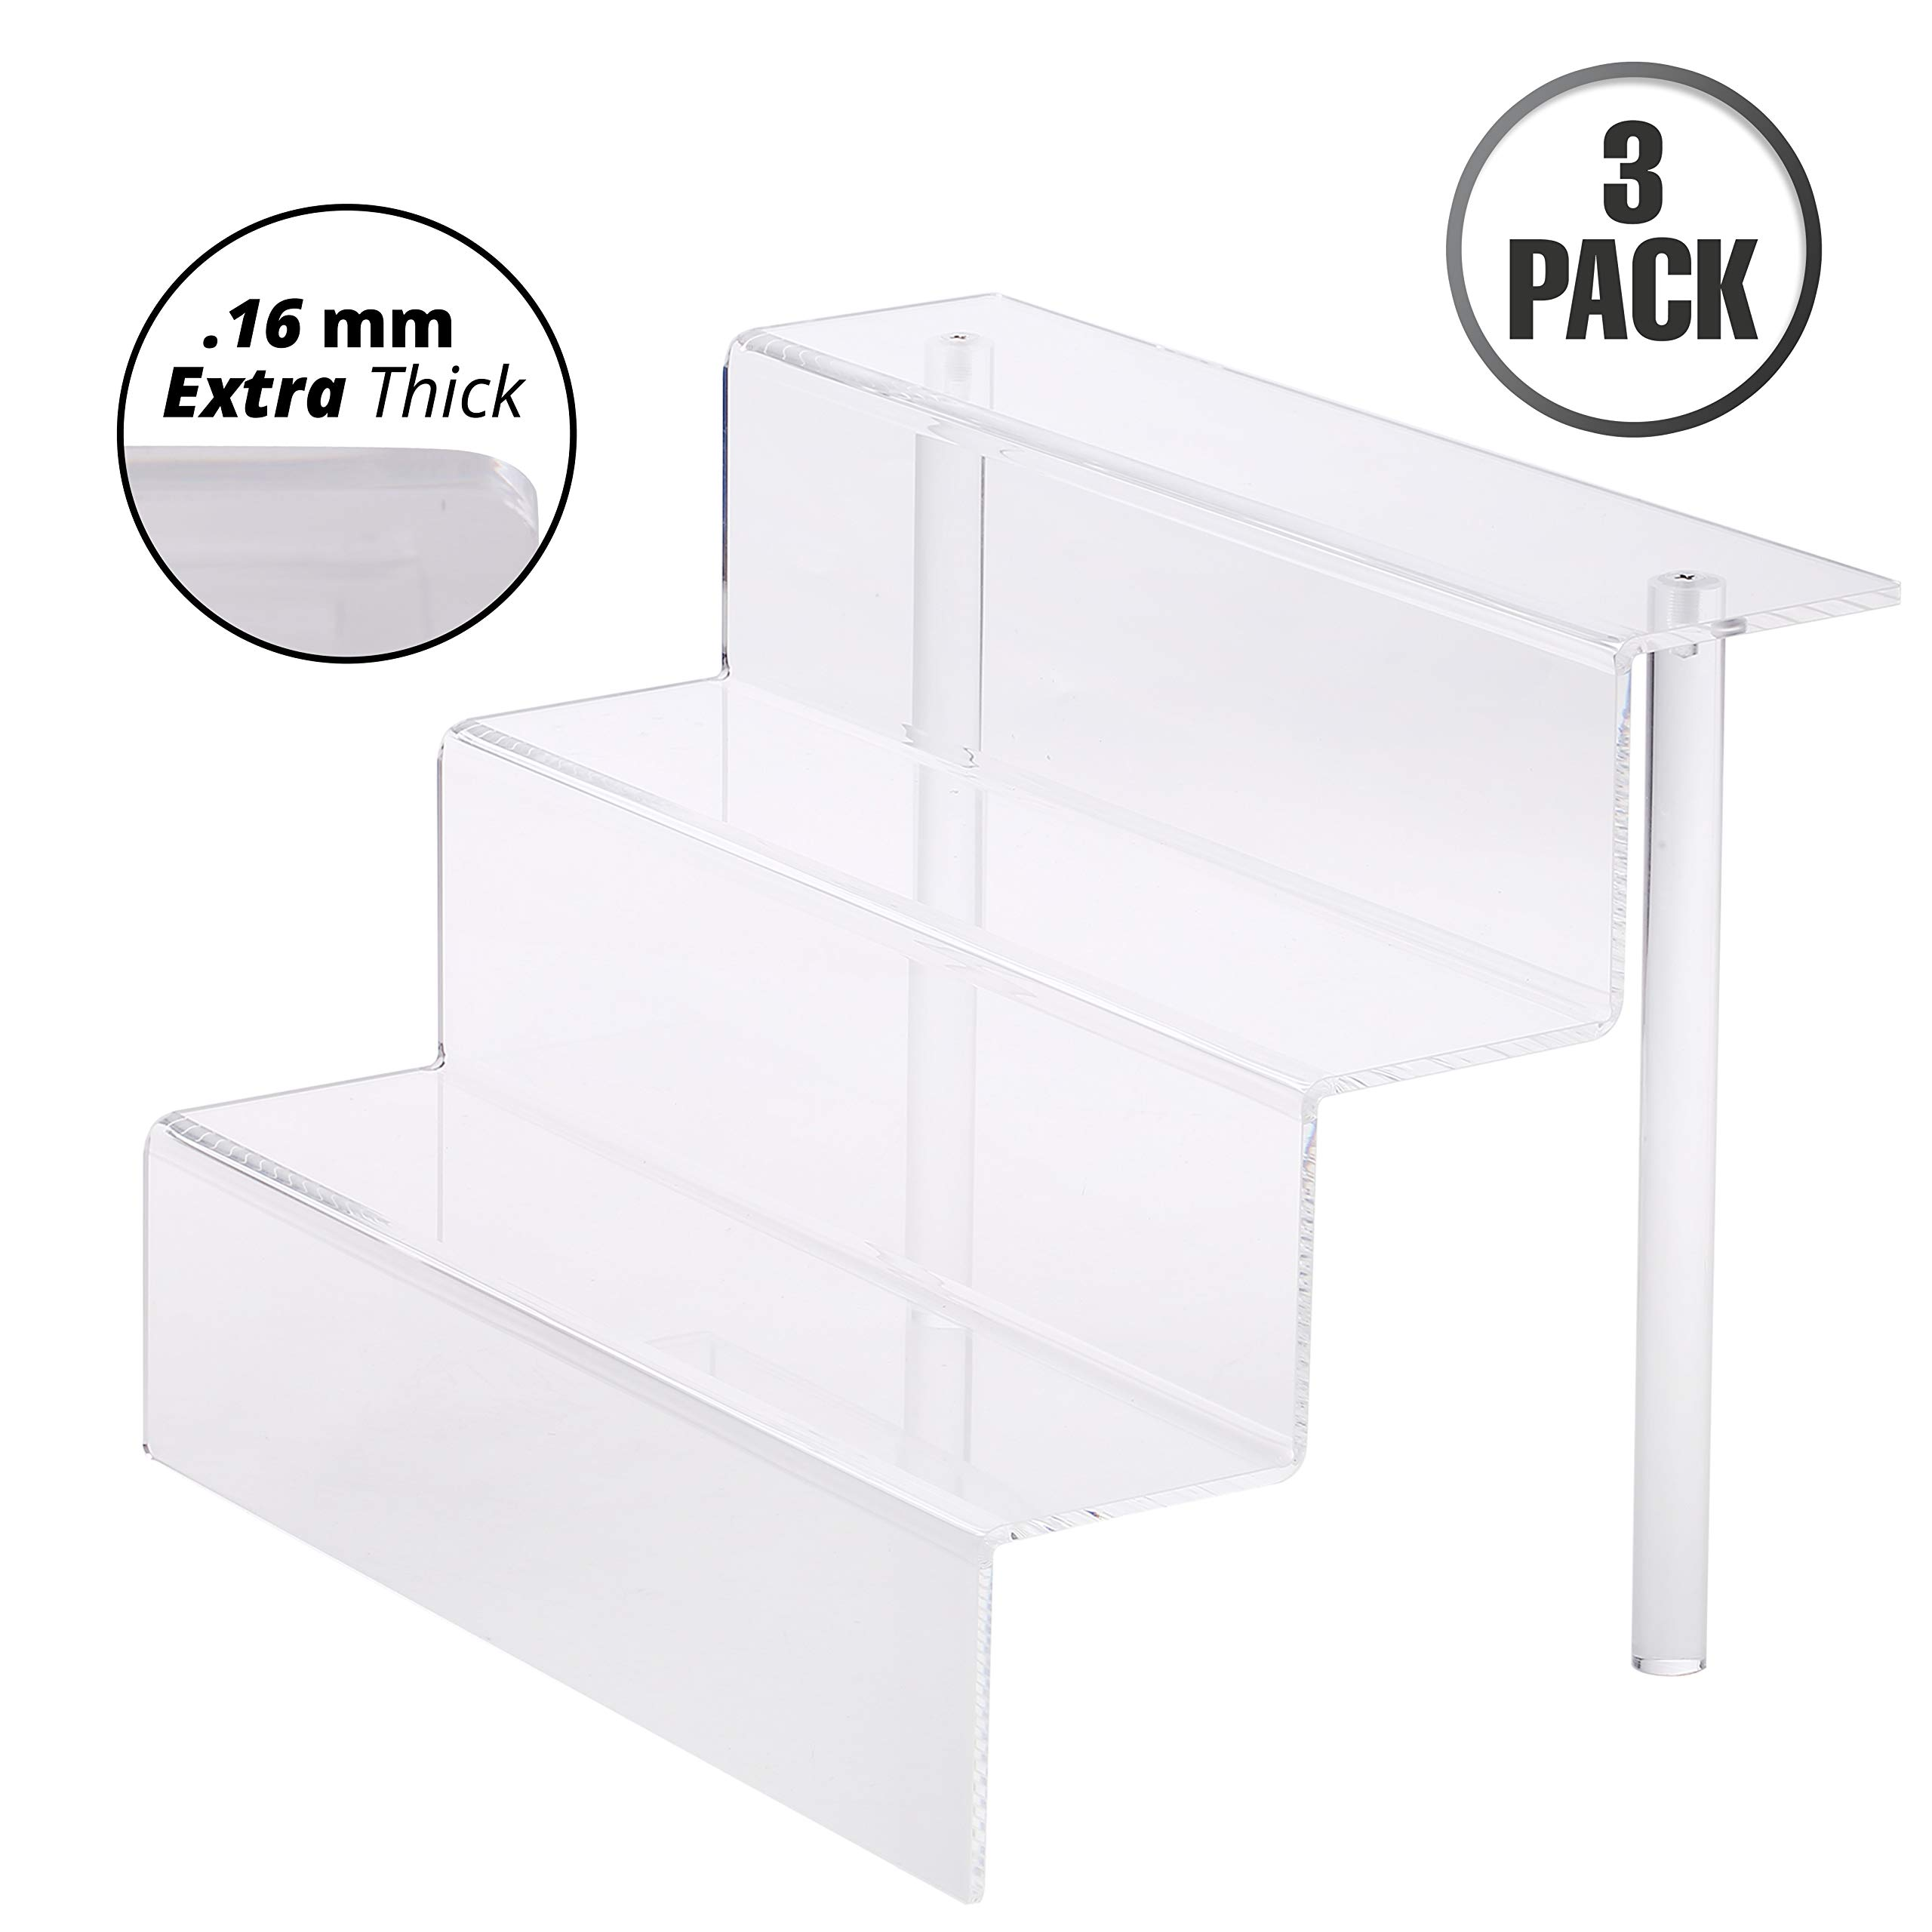 Mammoth Clear Acrylic Figure Display Riser Stand for Small Amiibo, Funko, Pop Figurine, Cupcake, Perfume, Spice and Merchandise, 3 Tier Display Risers Steps for Table Counter, Desk, and Shelf (3 Pack)